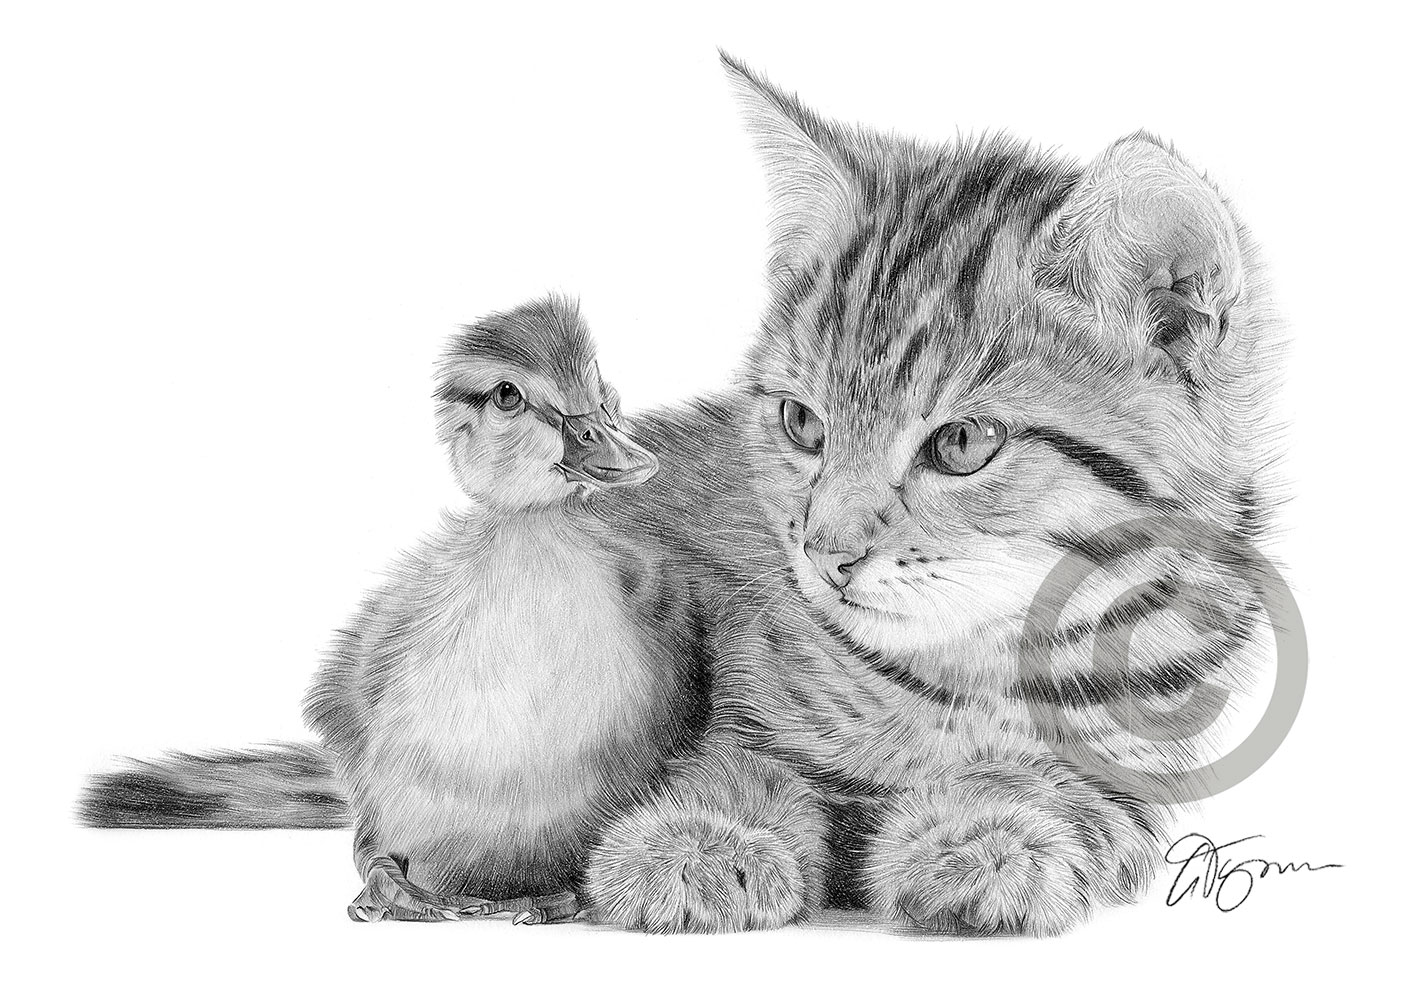 Details about cat and duckling pencil drawing print a4 only signed by artist gary tymon